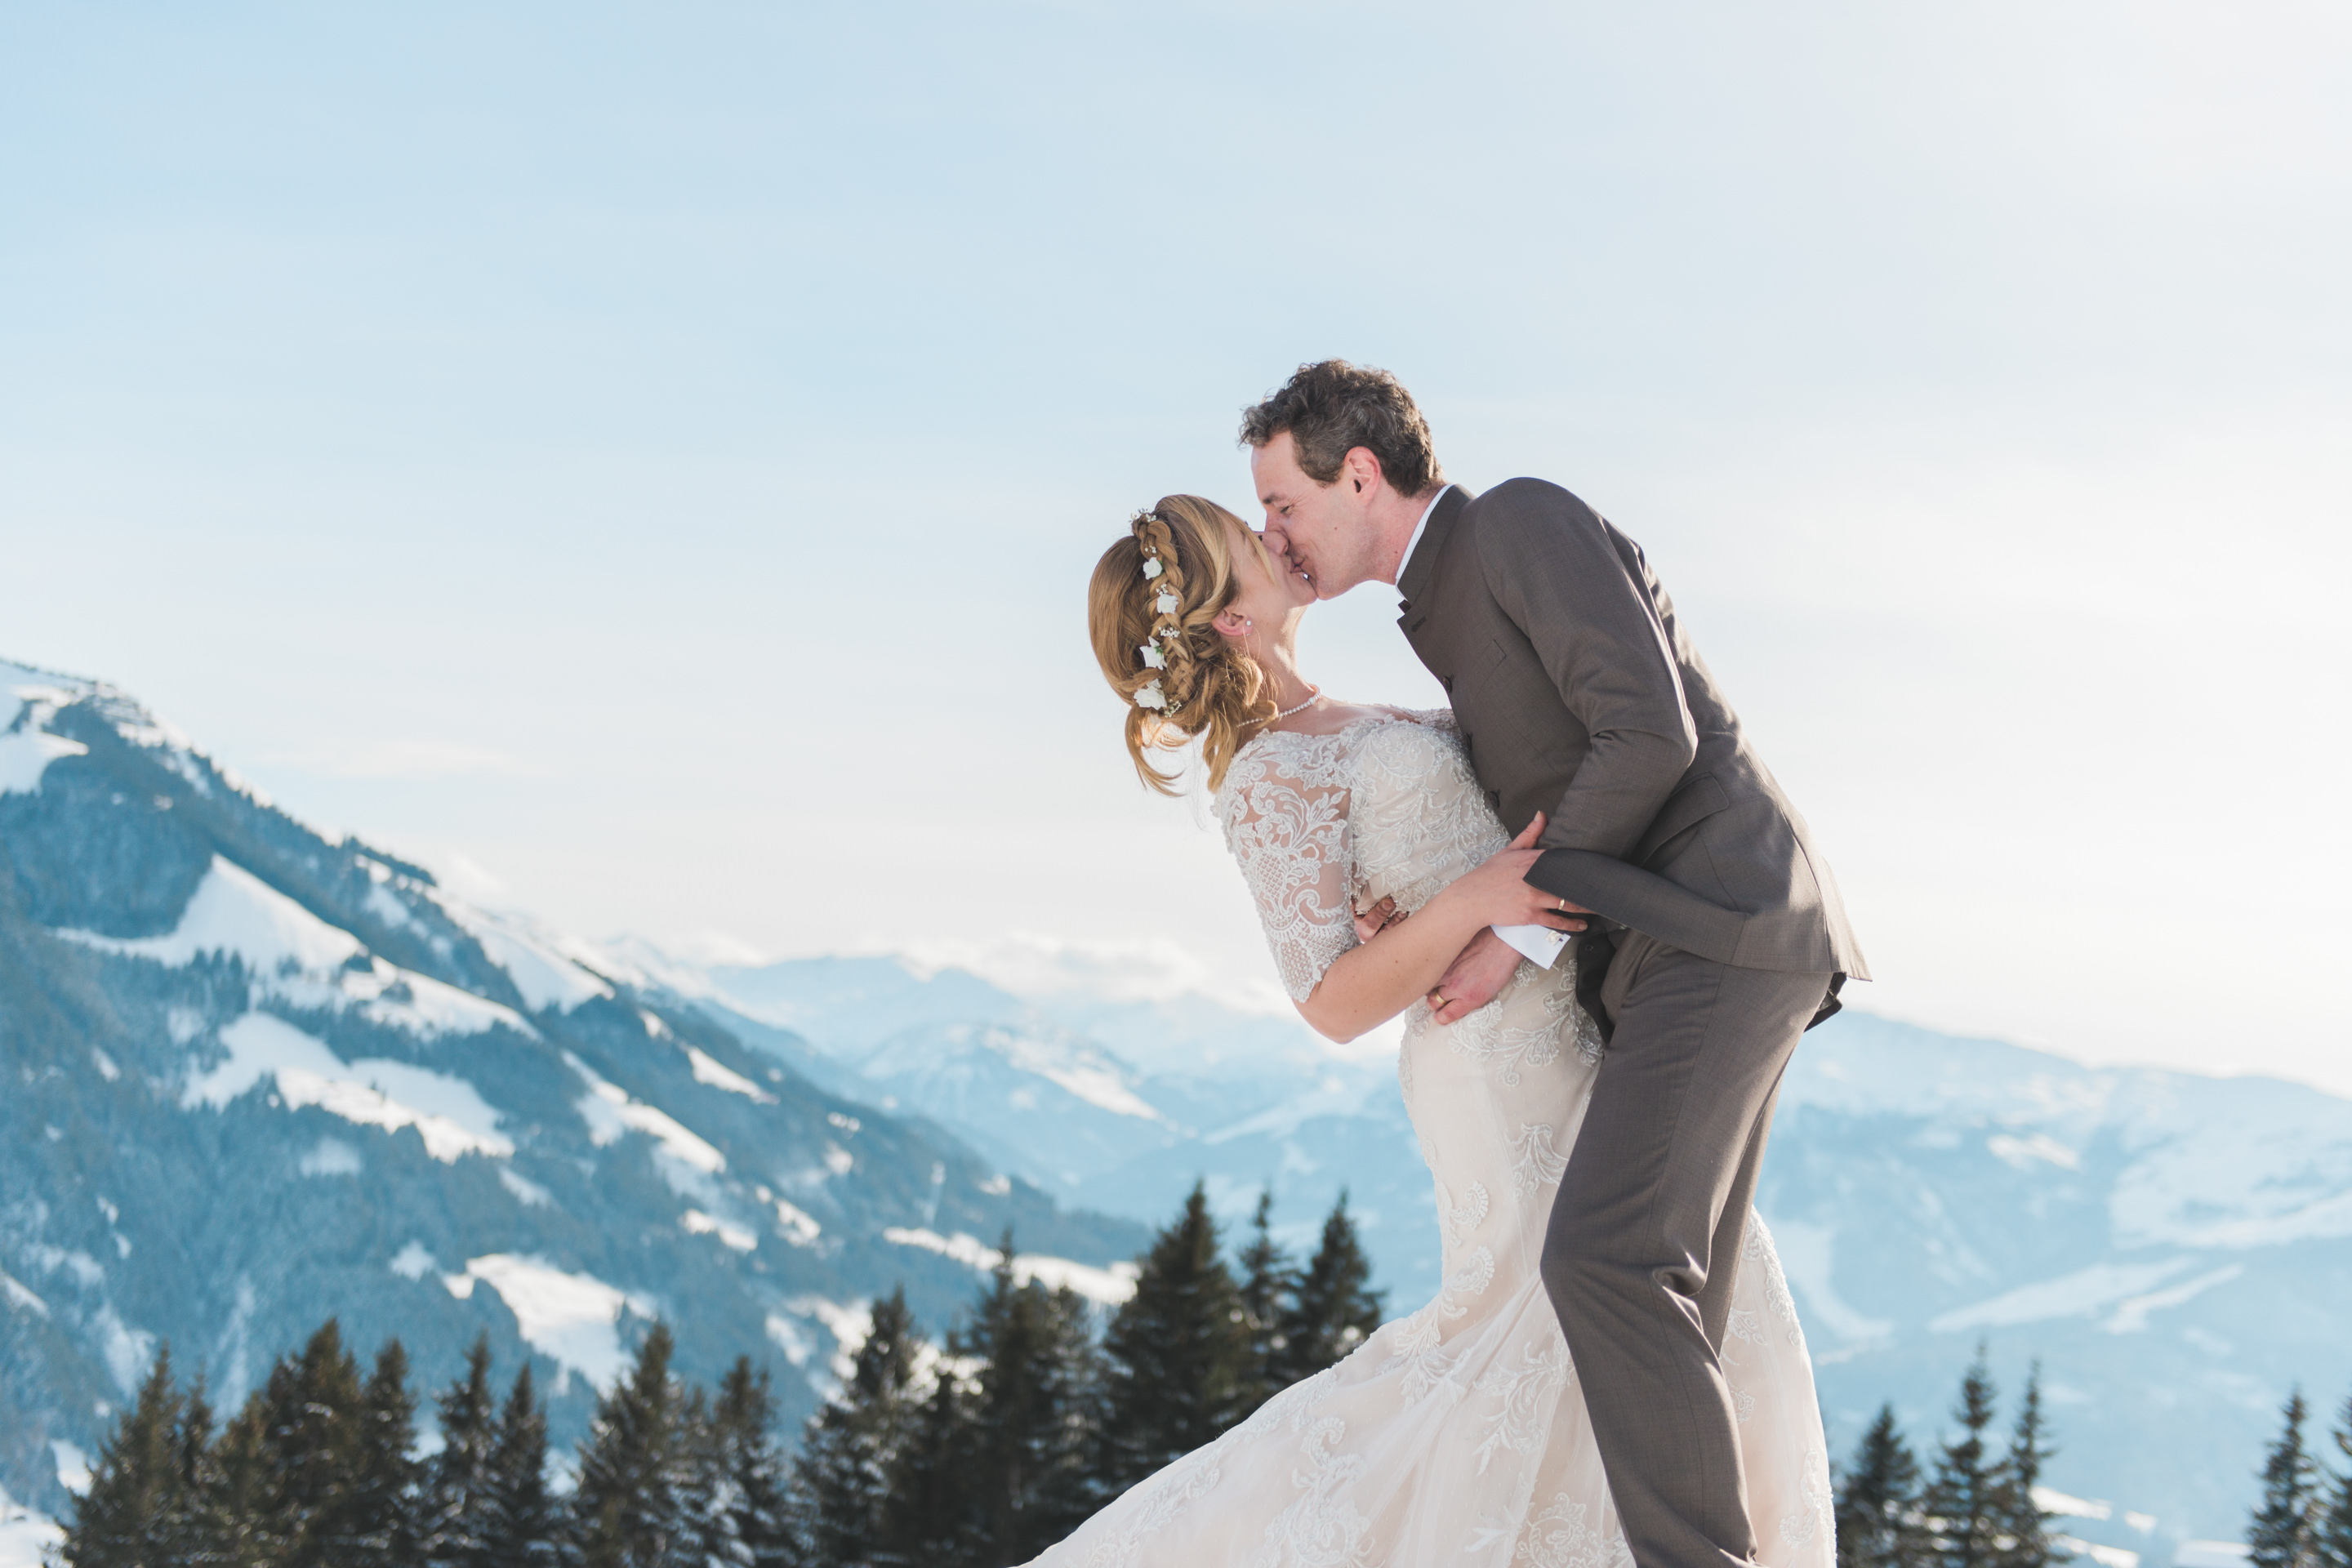 Bride and Groom at a fun wedding in Austria on top of a mountain